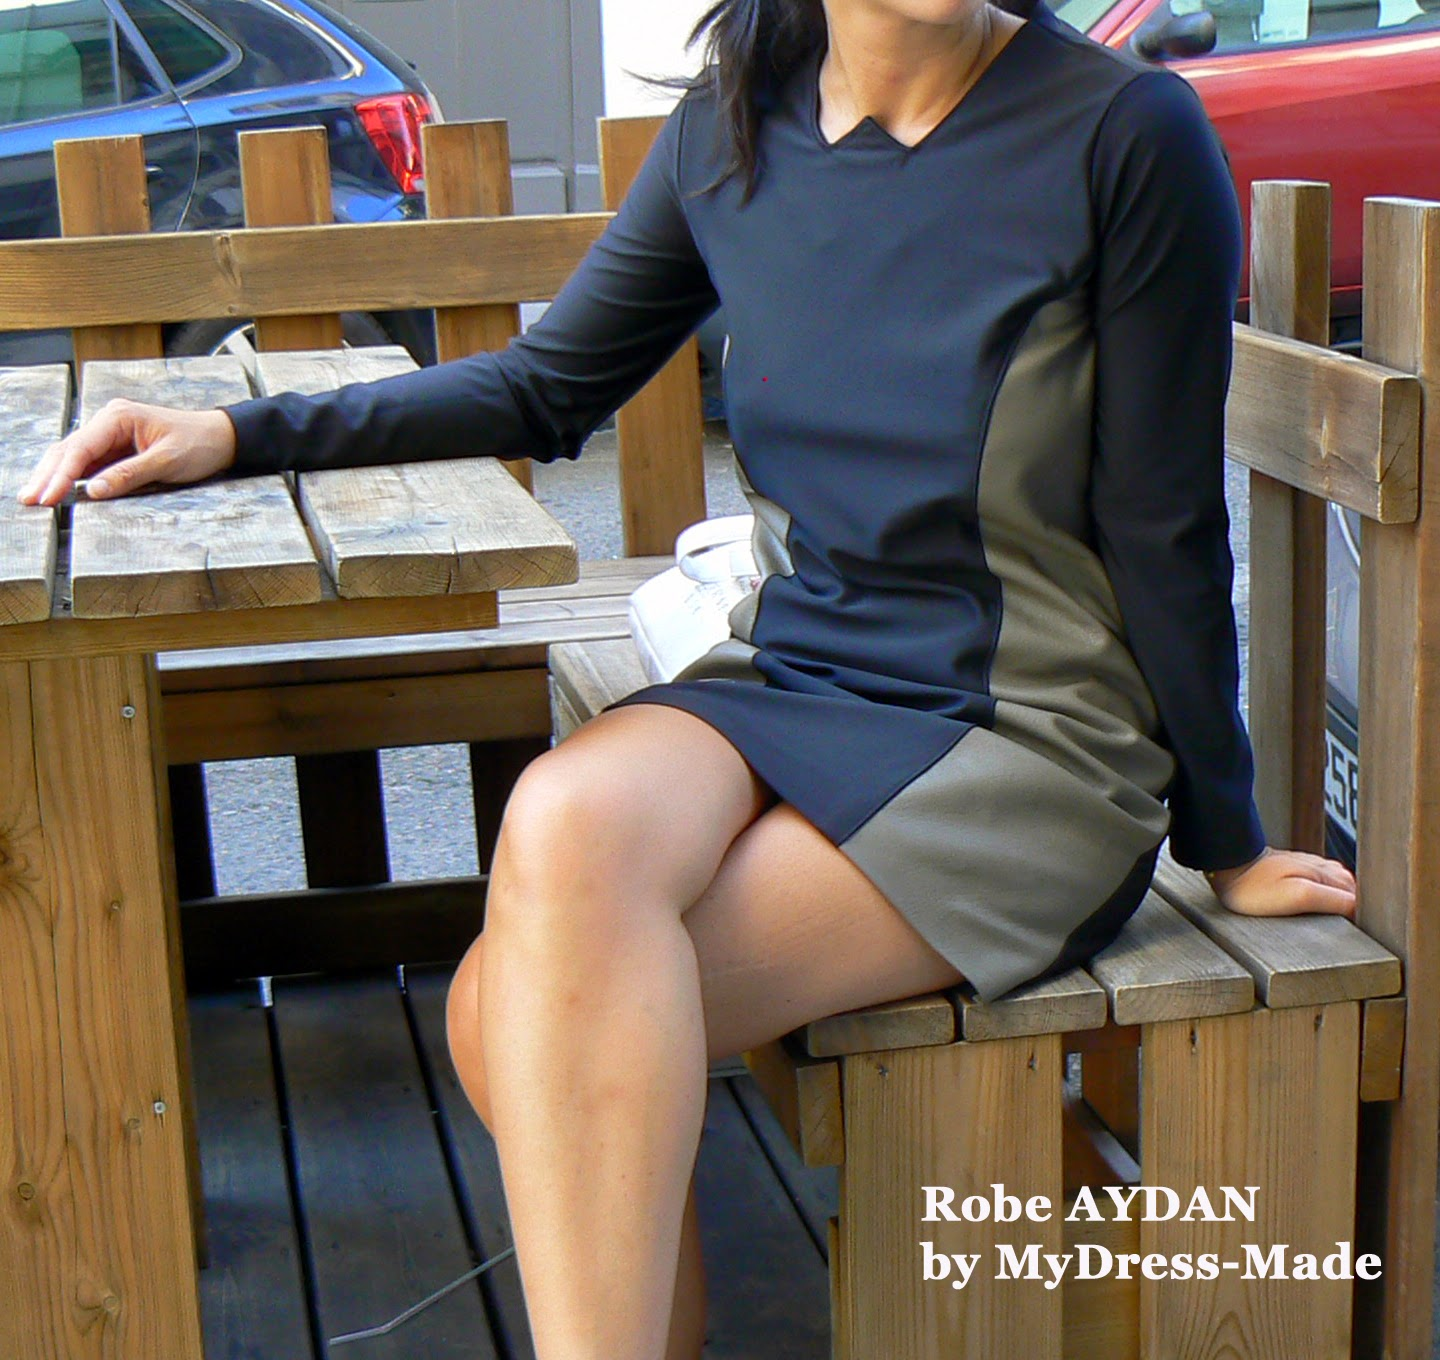 Robe AYDAN by MyDress-Made